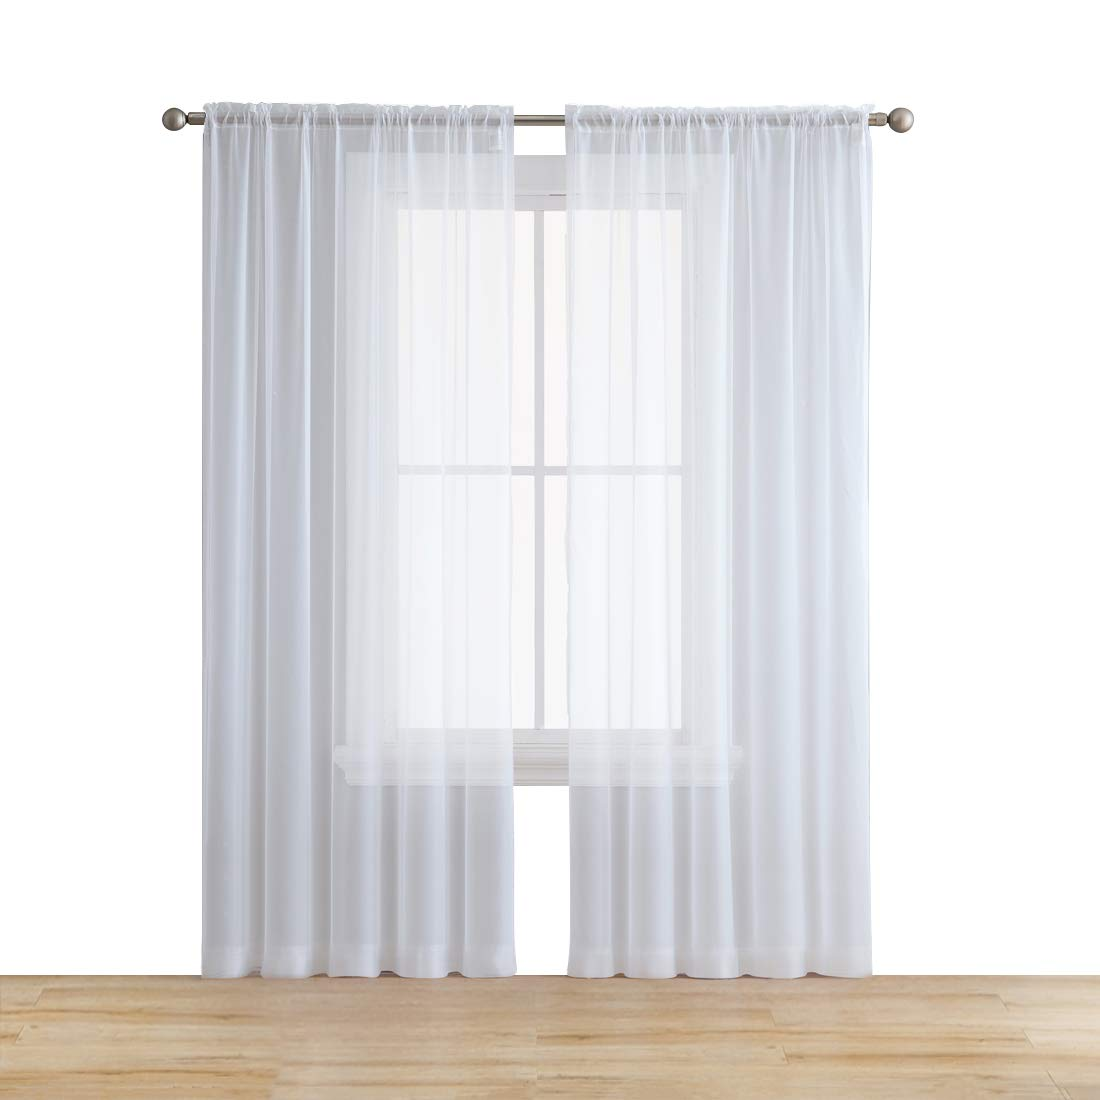 HLC.ME White 54'' inch x 84'' inch Sheer Curtains Window Voile Panels for Bedroom & Kitchen, Set of 2 by HLC.ME